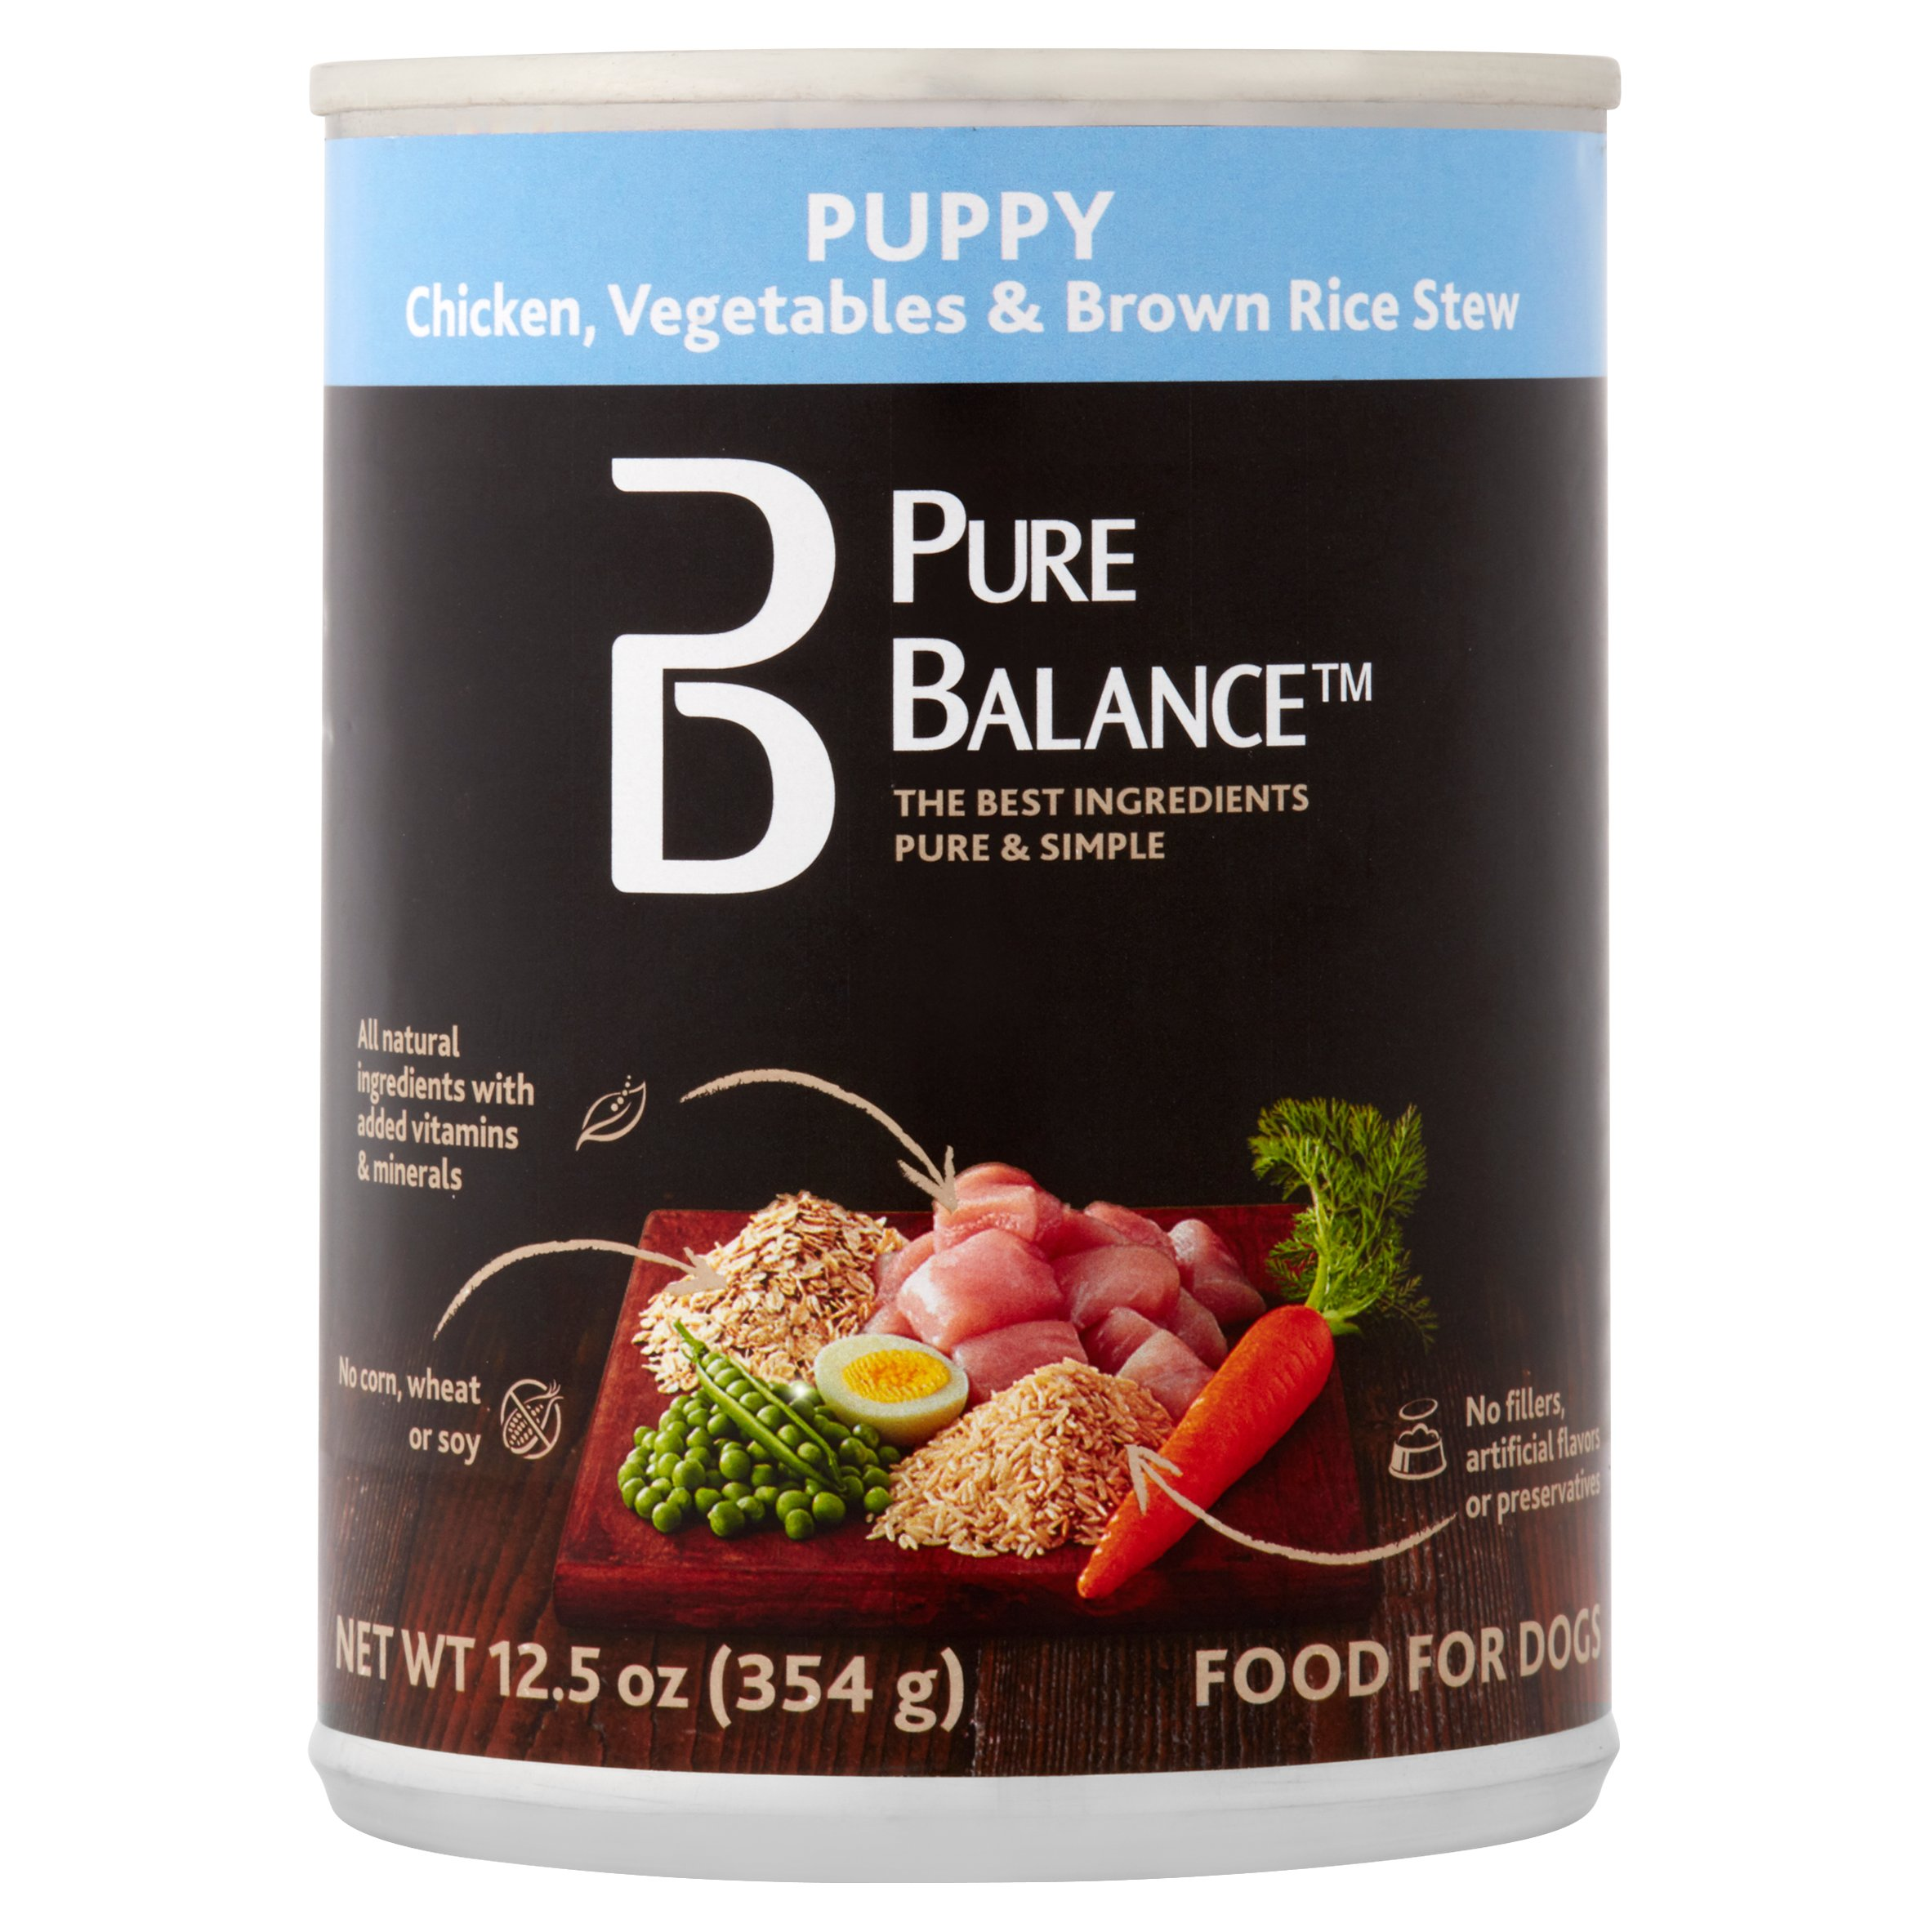 Pure Balance Canned Chicken Vegetables & Brown Rice Stew Wet Puppy Food, 12.5 Oz